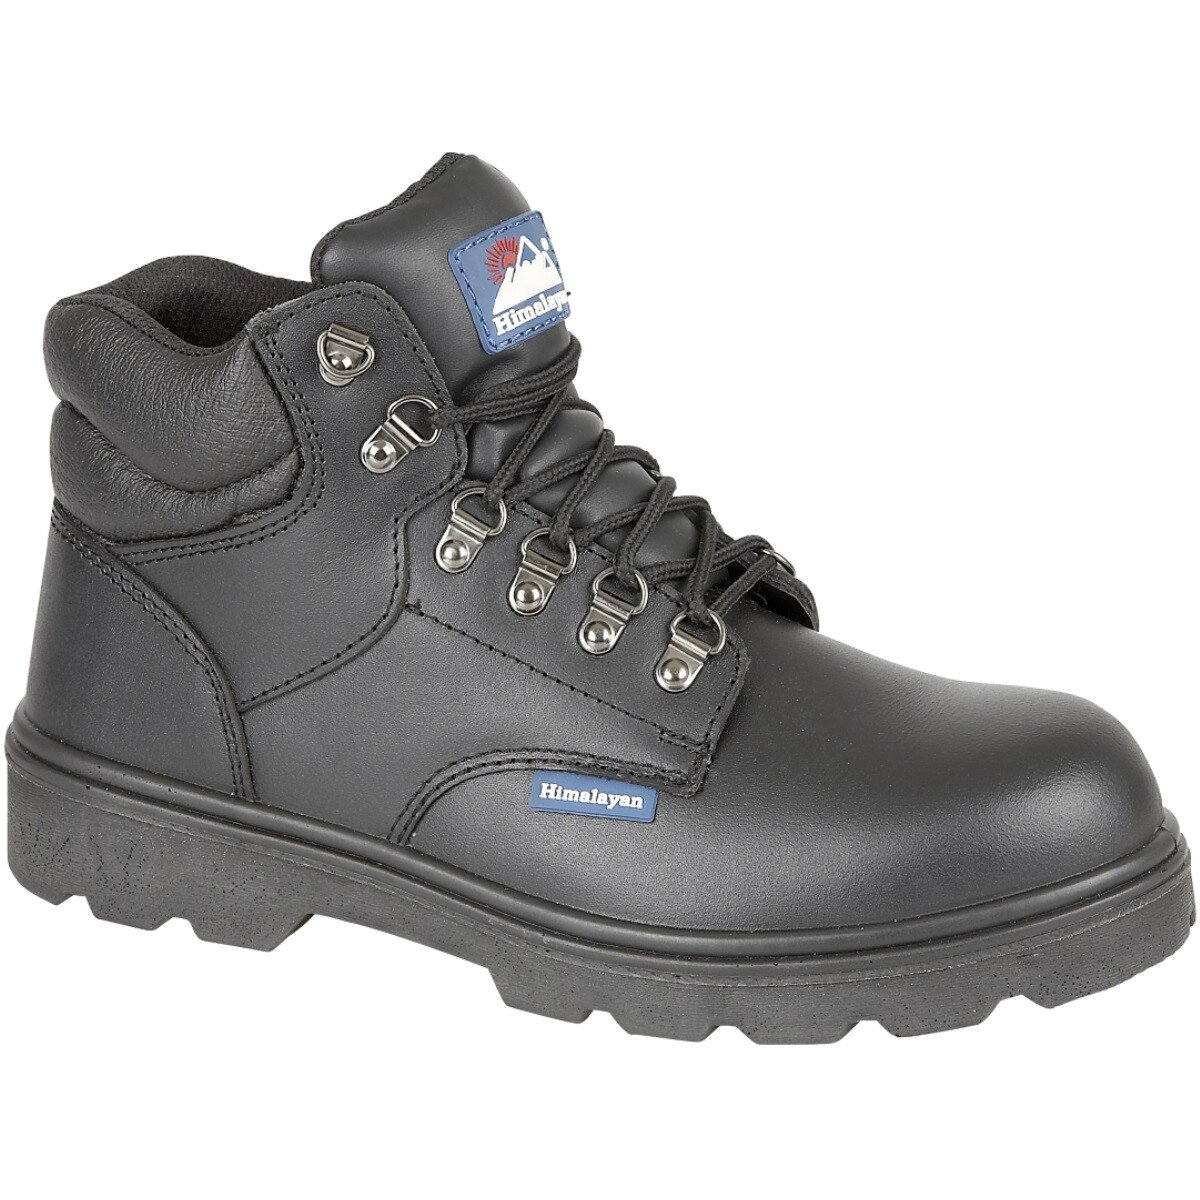 Himalayan 5220 Fully Waterproof Safety Black Boot S3 SRC